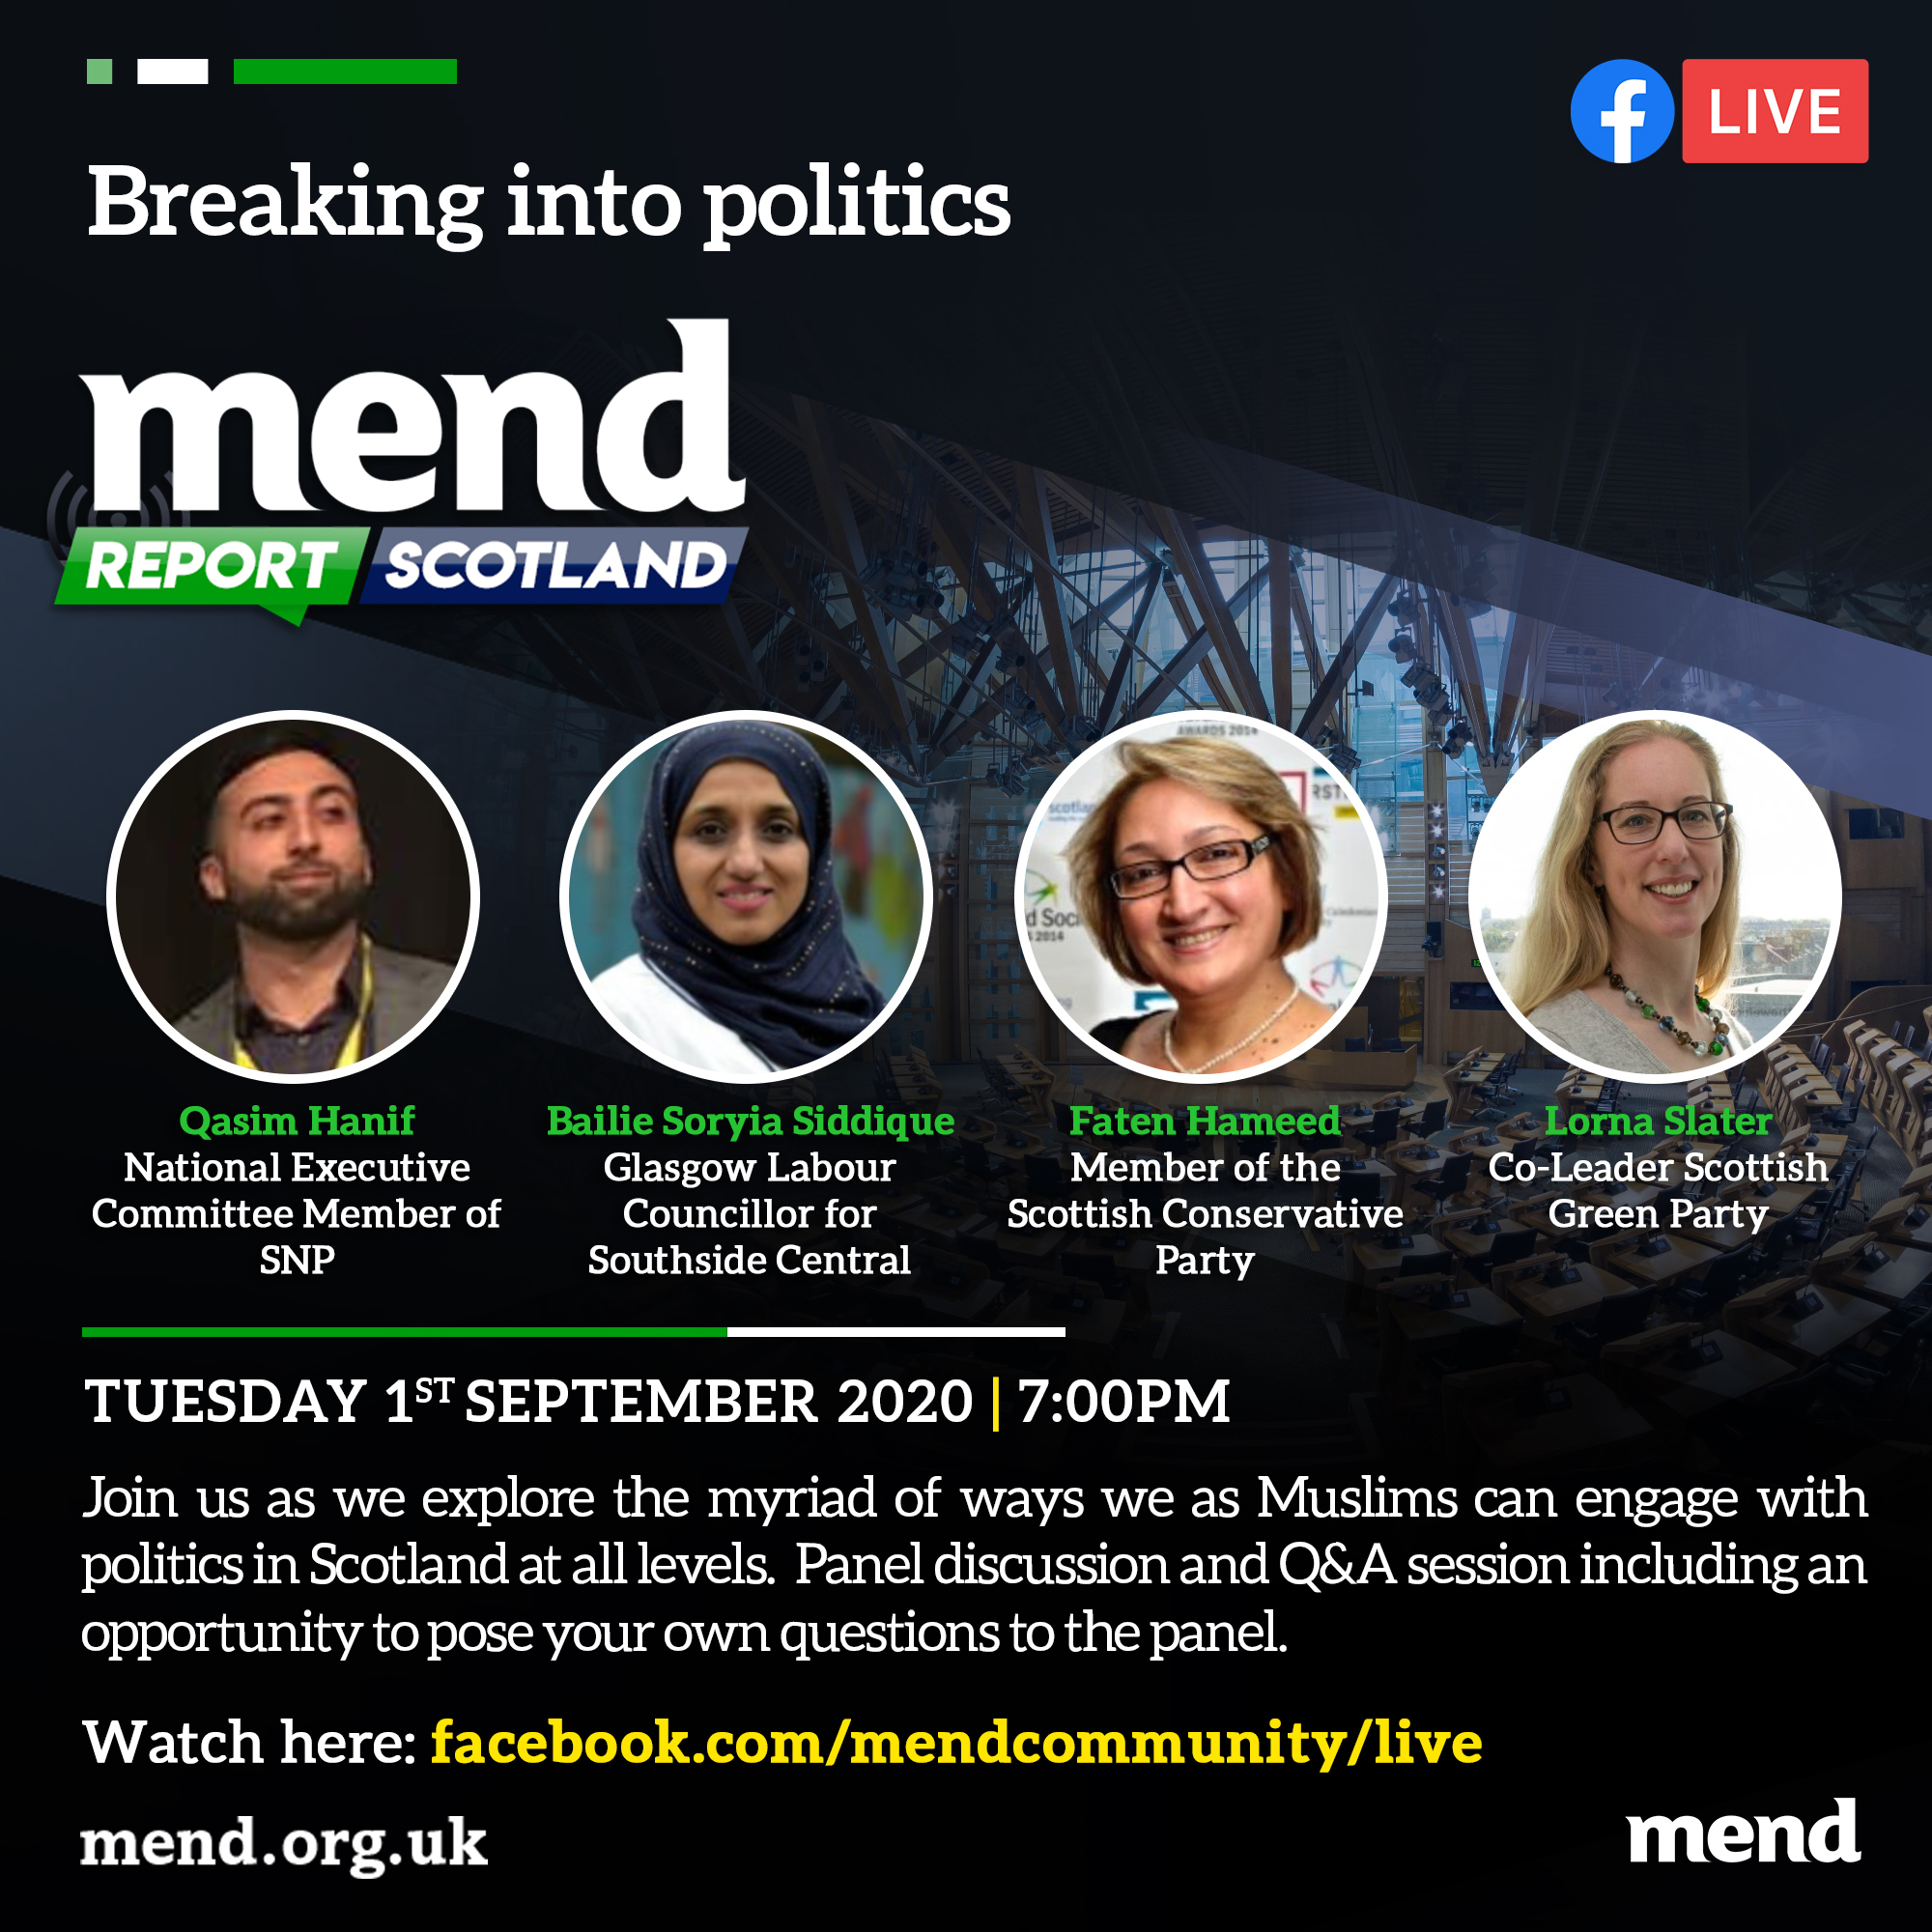 MEND report Scotland: Breaking in to politics